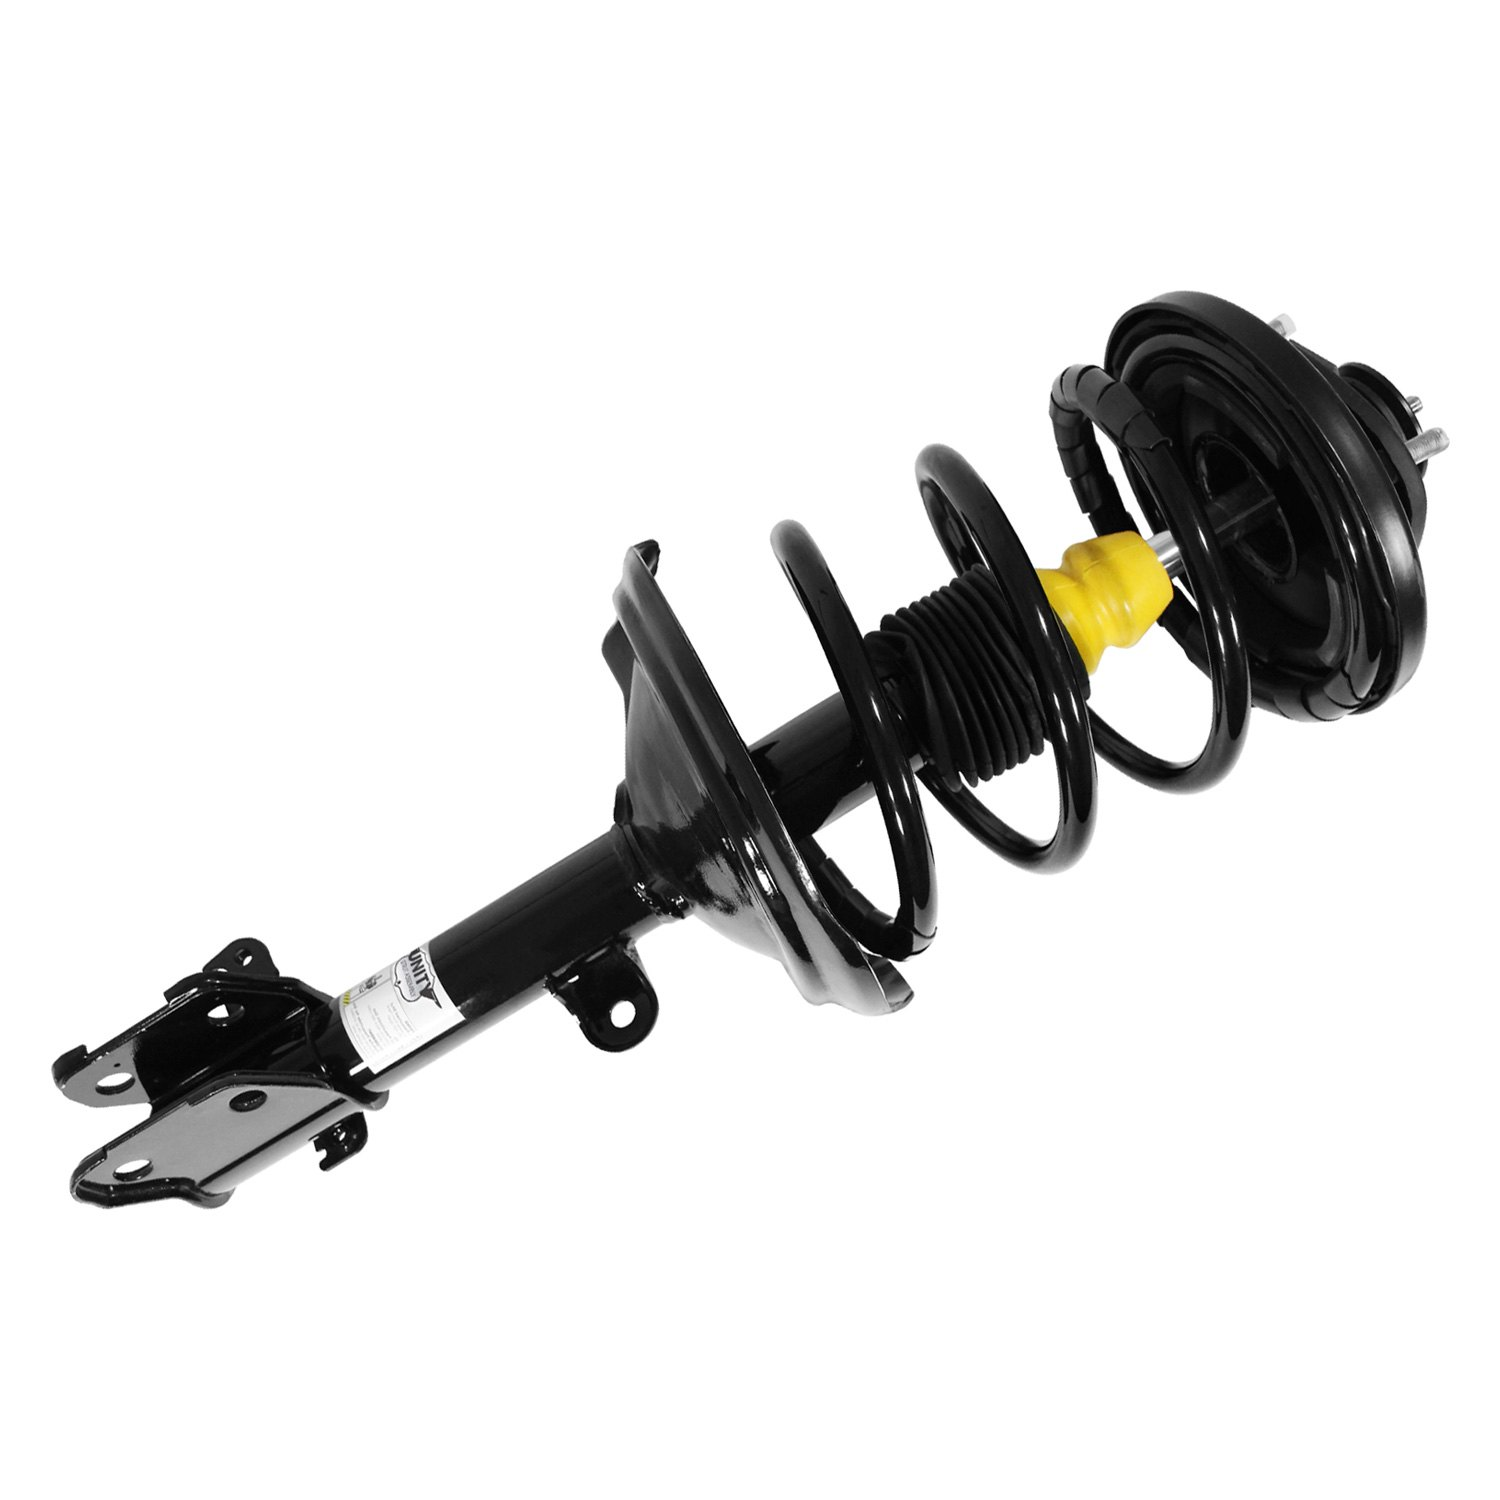 Acura MDX 2004 Front Complete Strut Assembly Kit